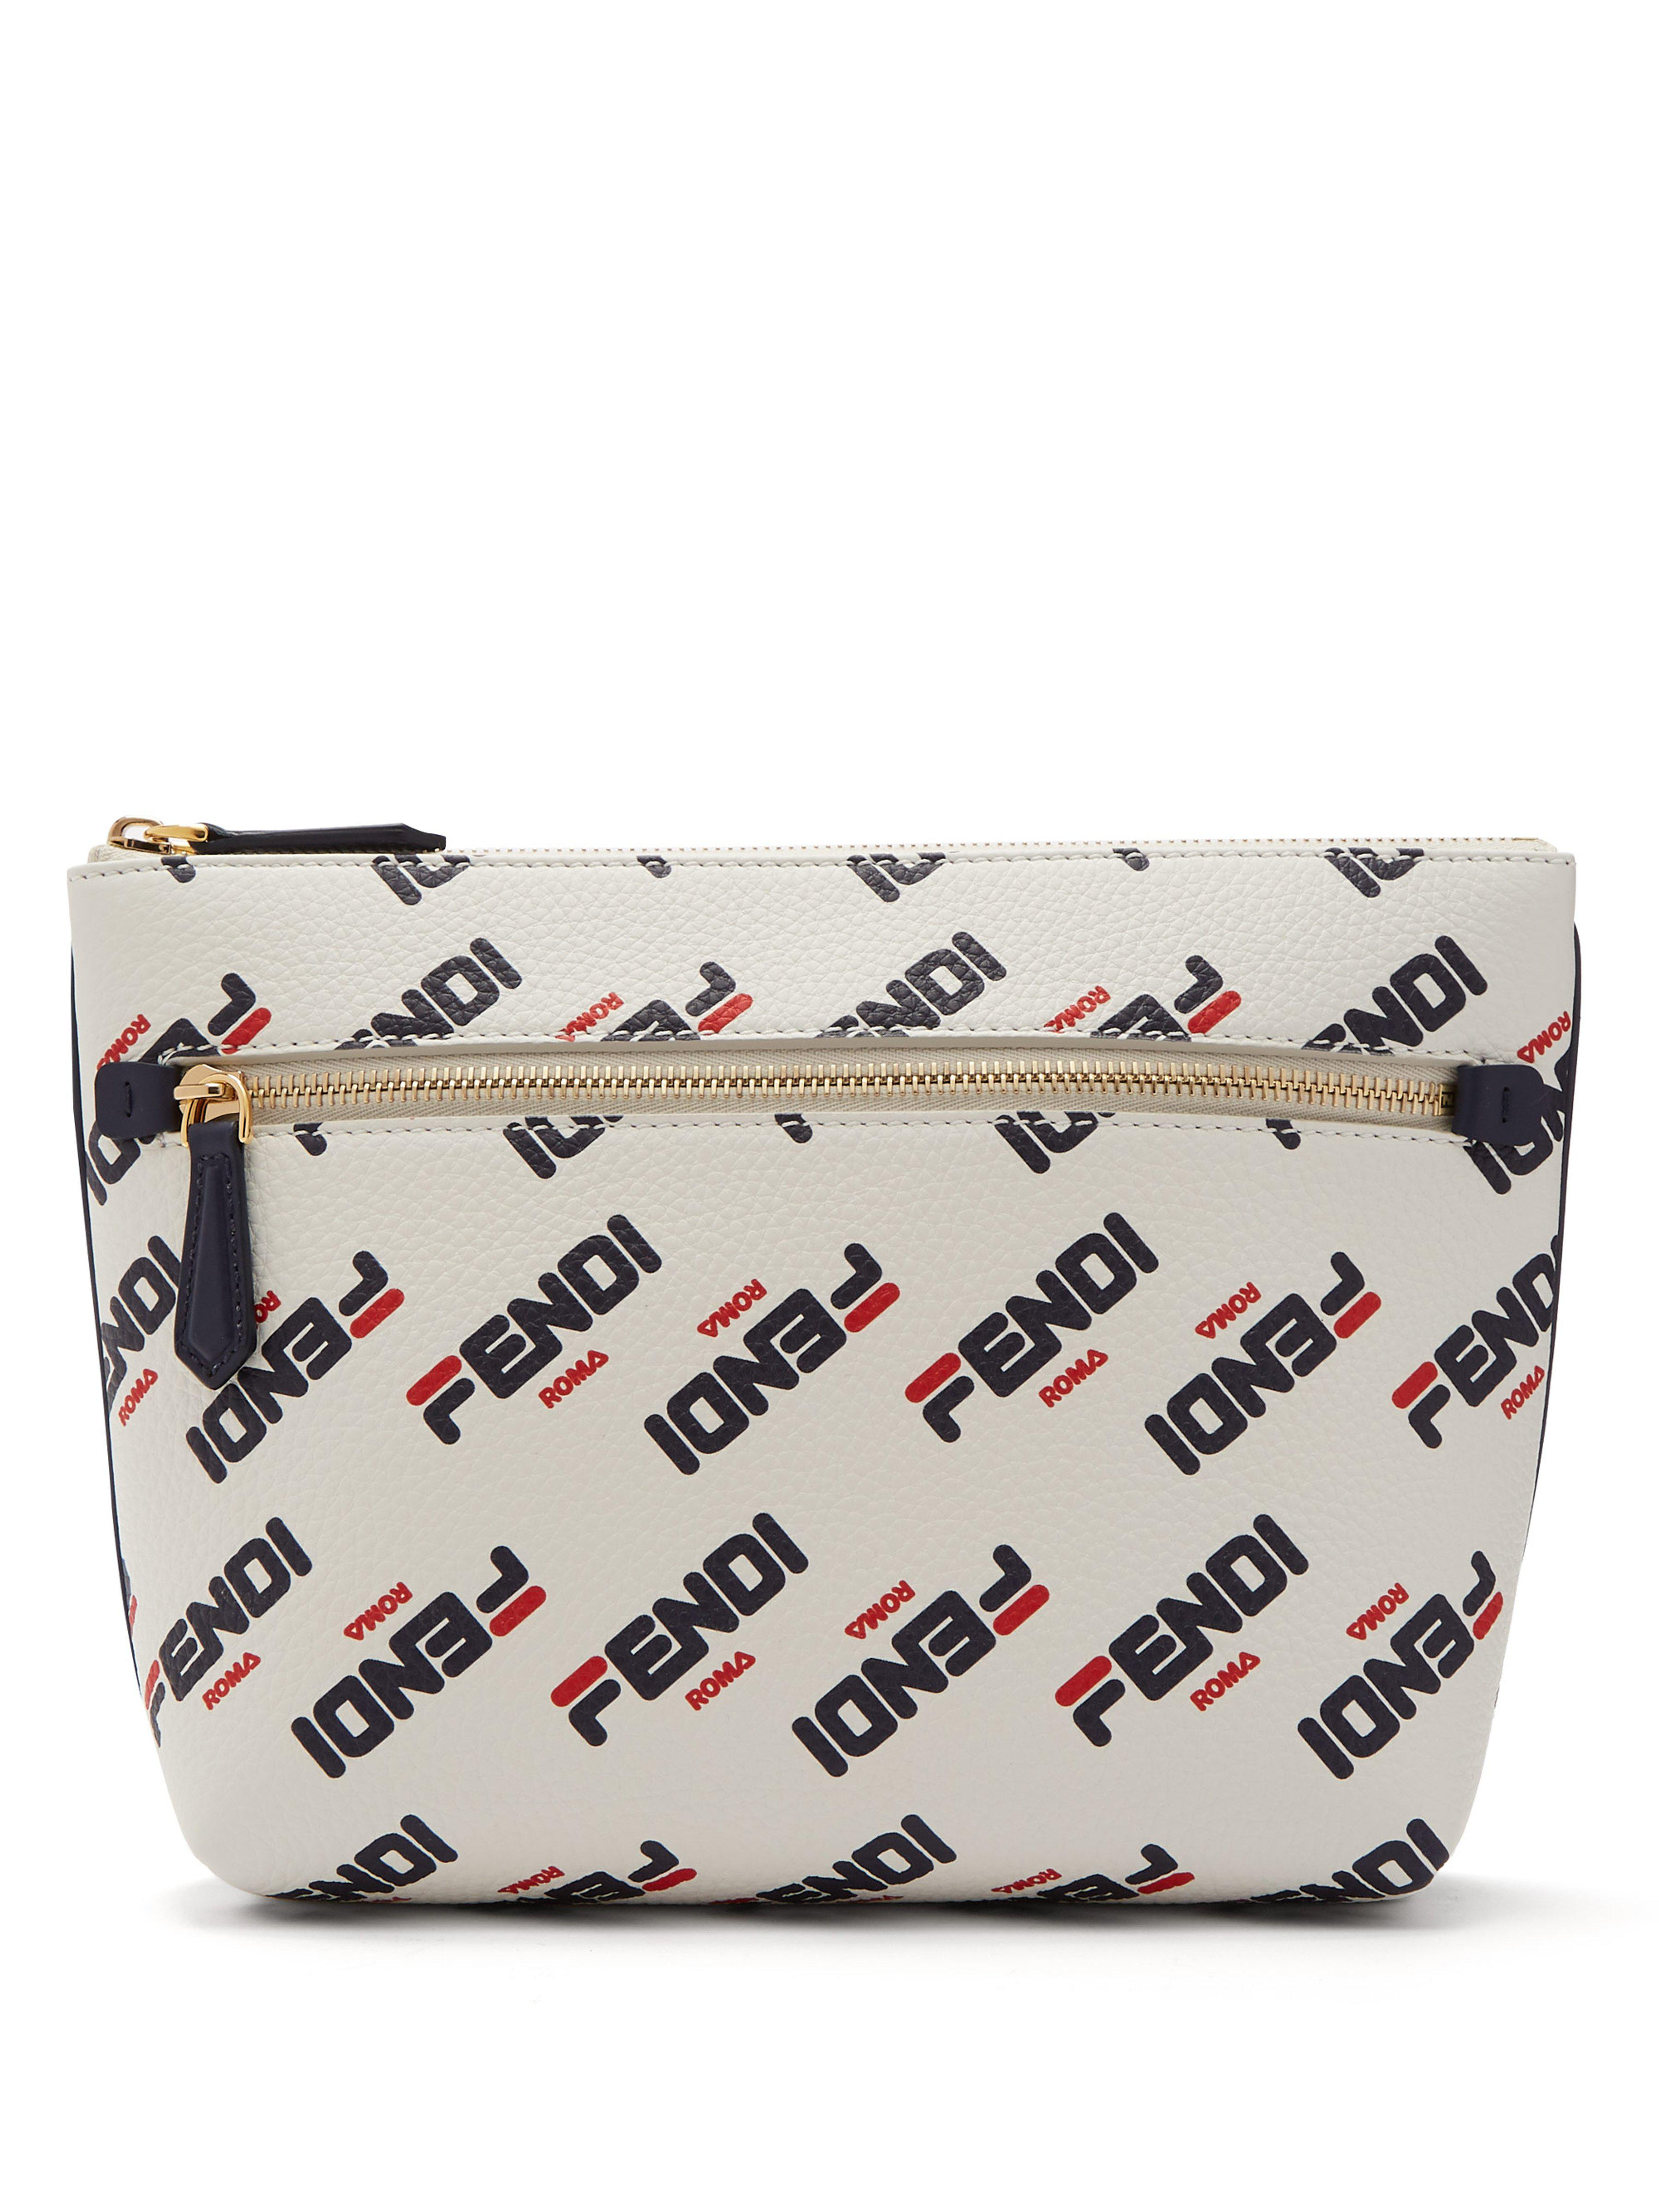 9ff51136dc Fendi. Women s Mania Logo Print Leather Pouch